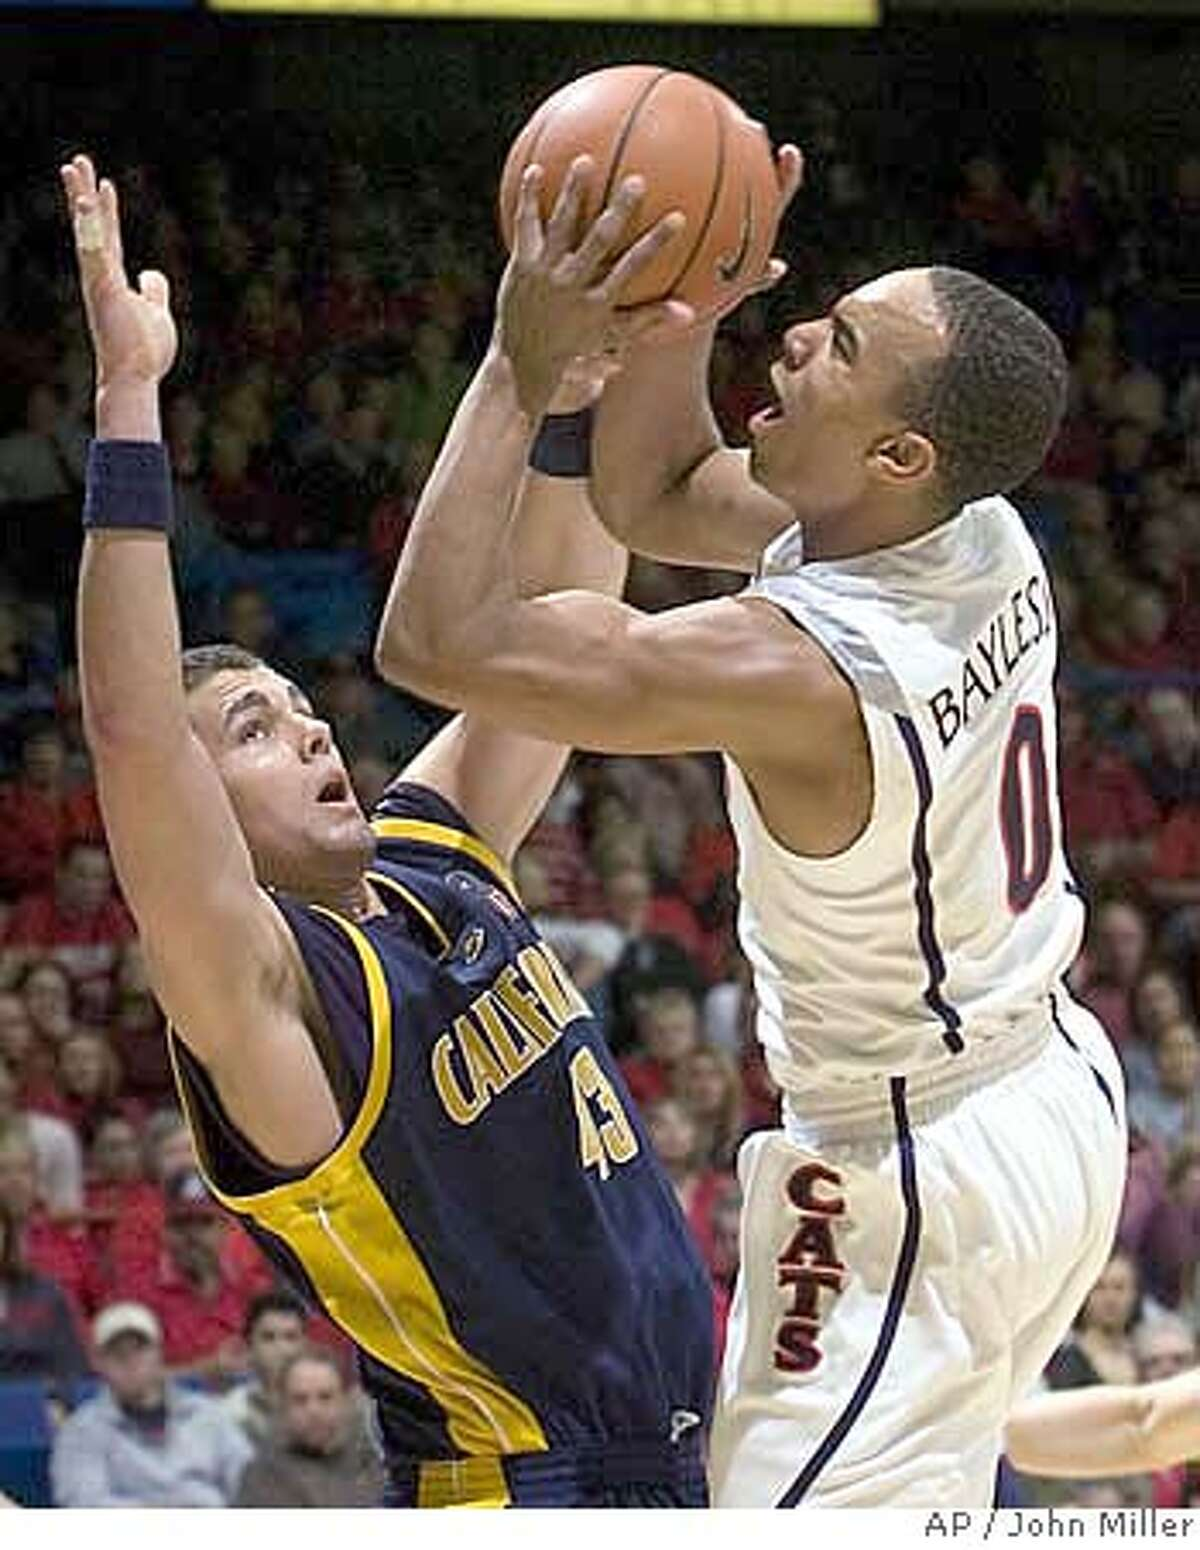 Arizona's Jerryd Bayless (0) shoots over the defense of California's Harper Kamp (43) during the first half of a basketball game in Tucson, Ariz., Thursday, Feb. 14, 2008. (AP Photo/John Miller)